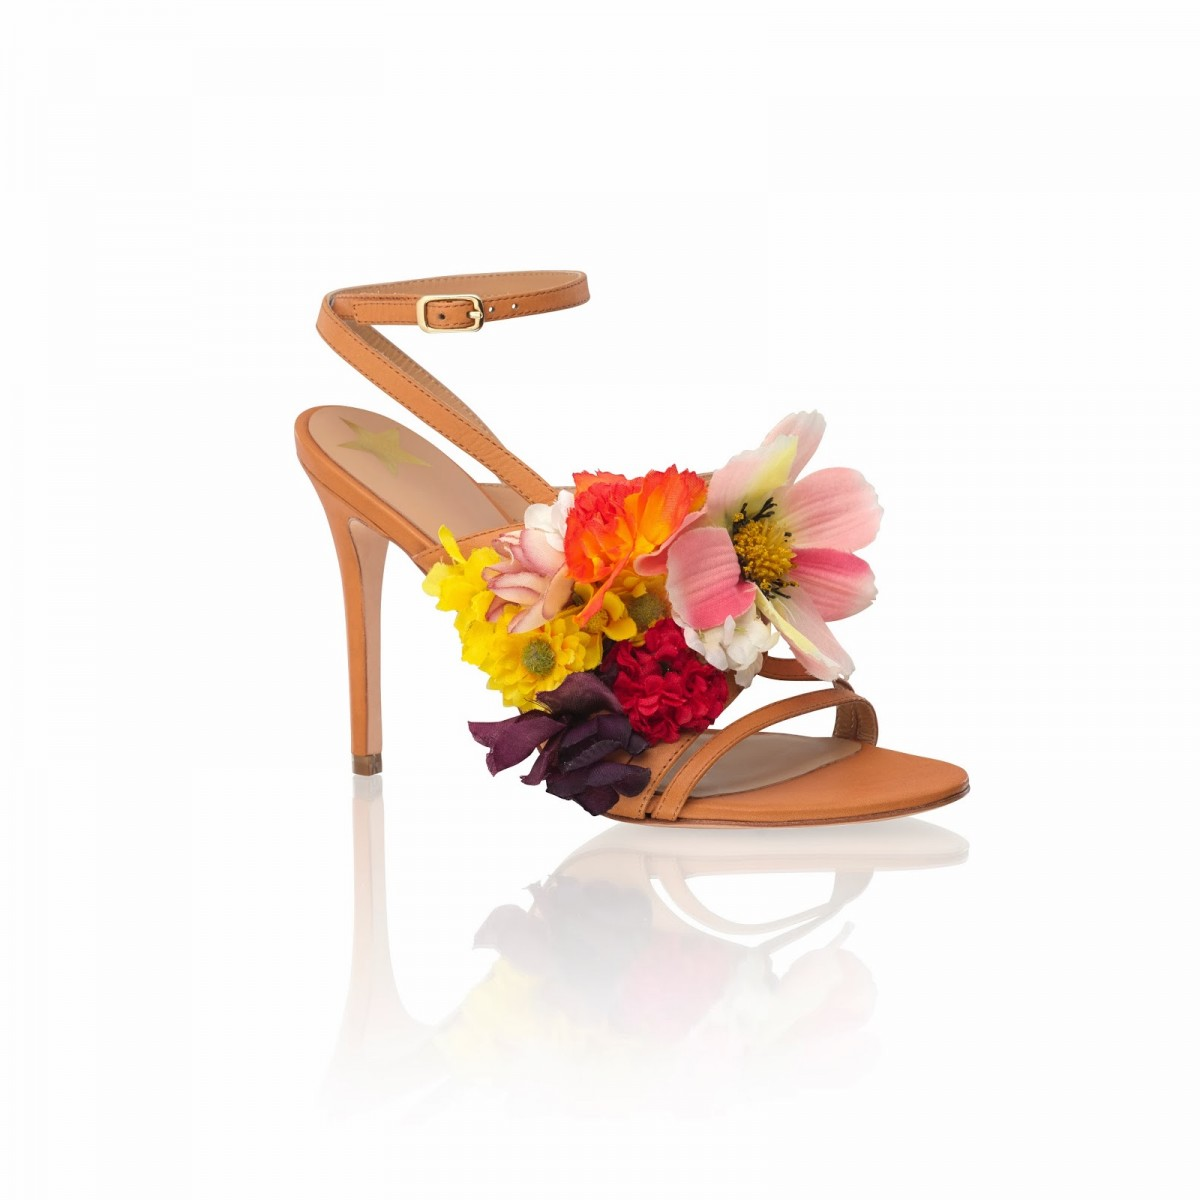 jardines-kotur-shoes-silk-flowers-vachetta-ss14-3quarters